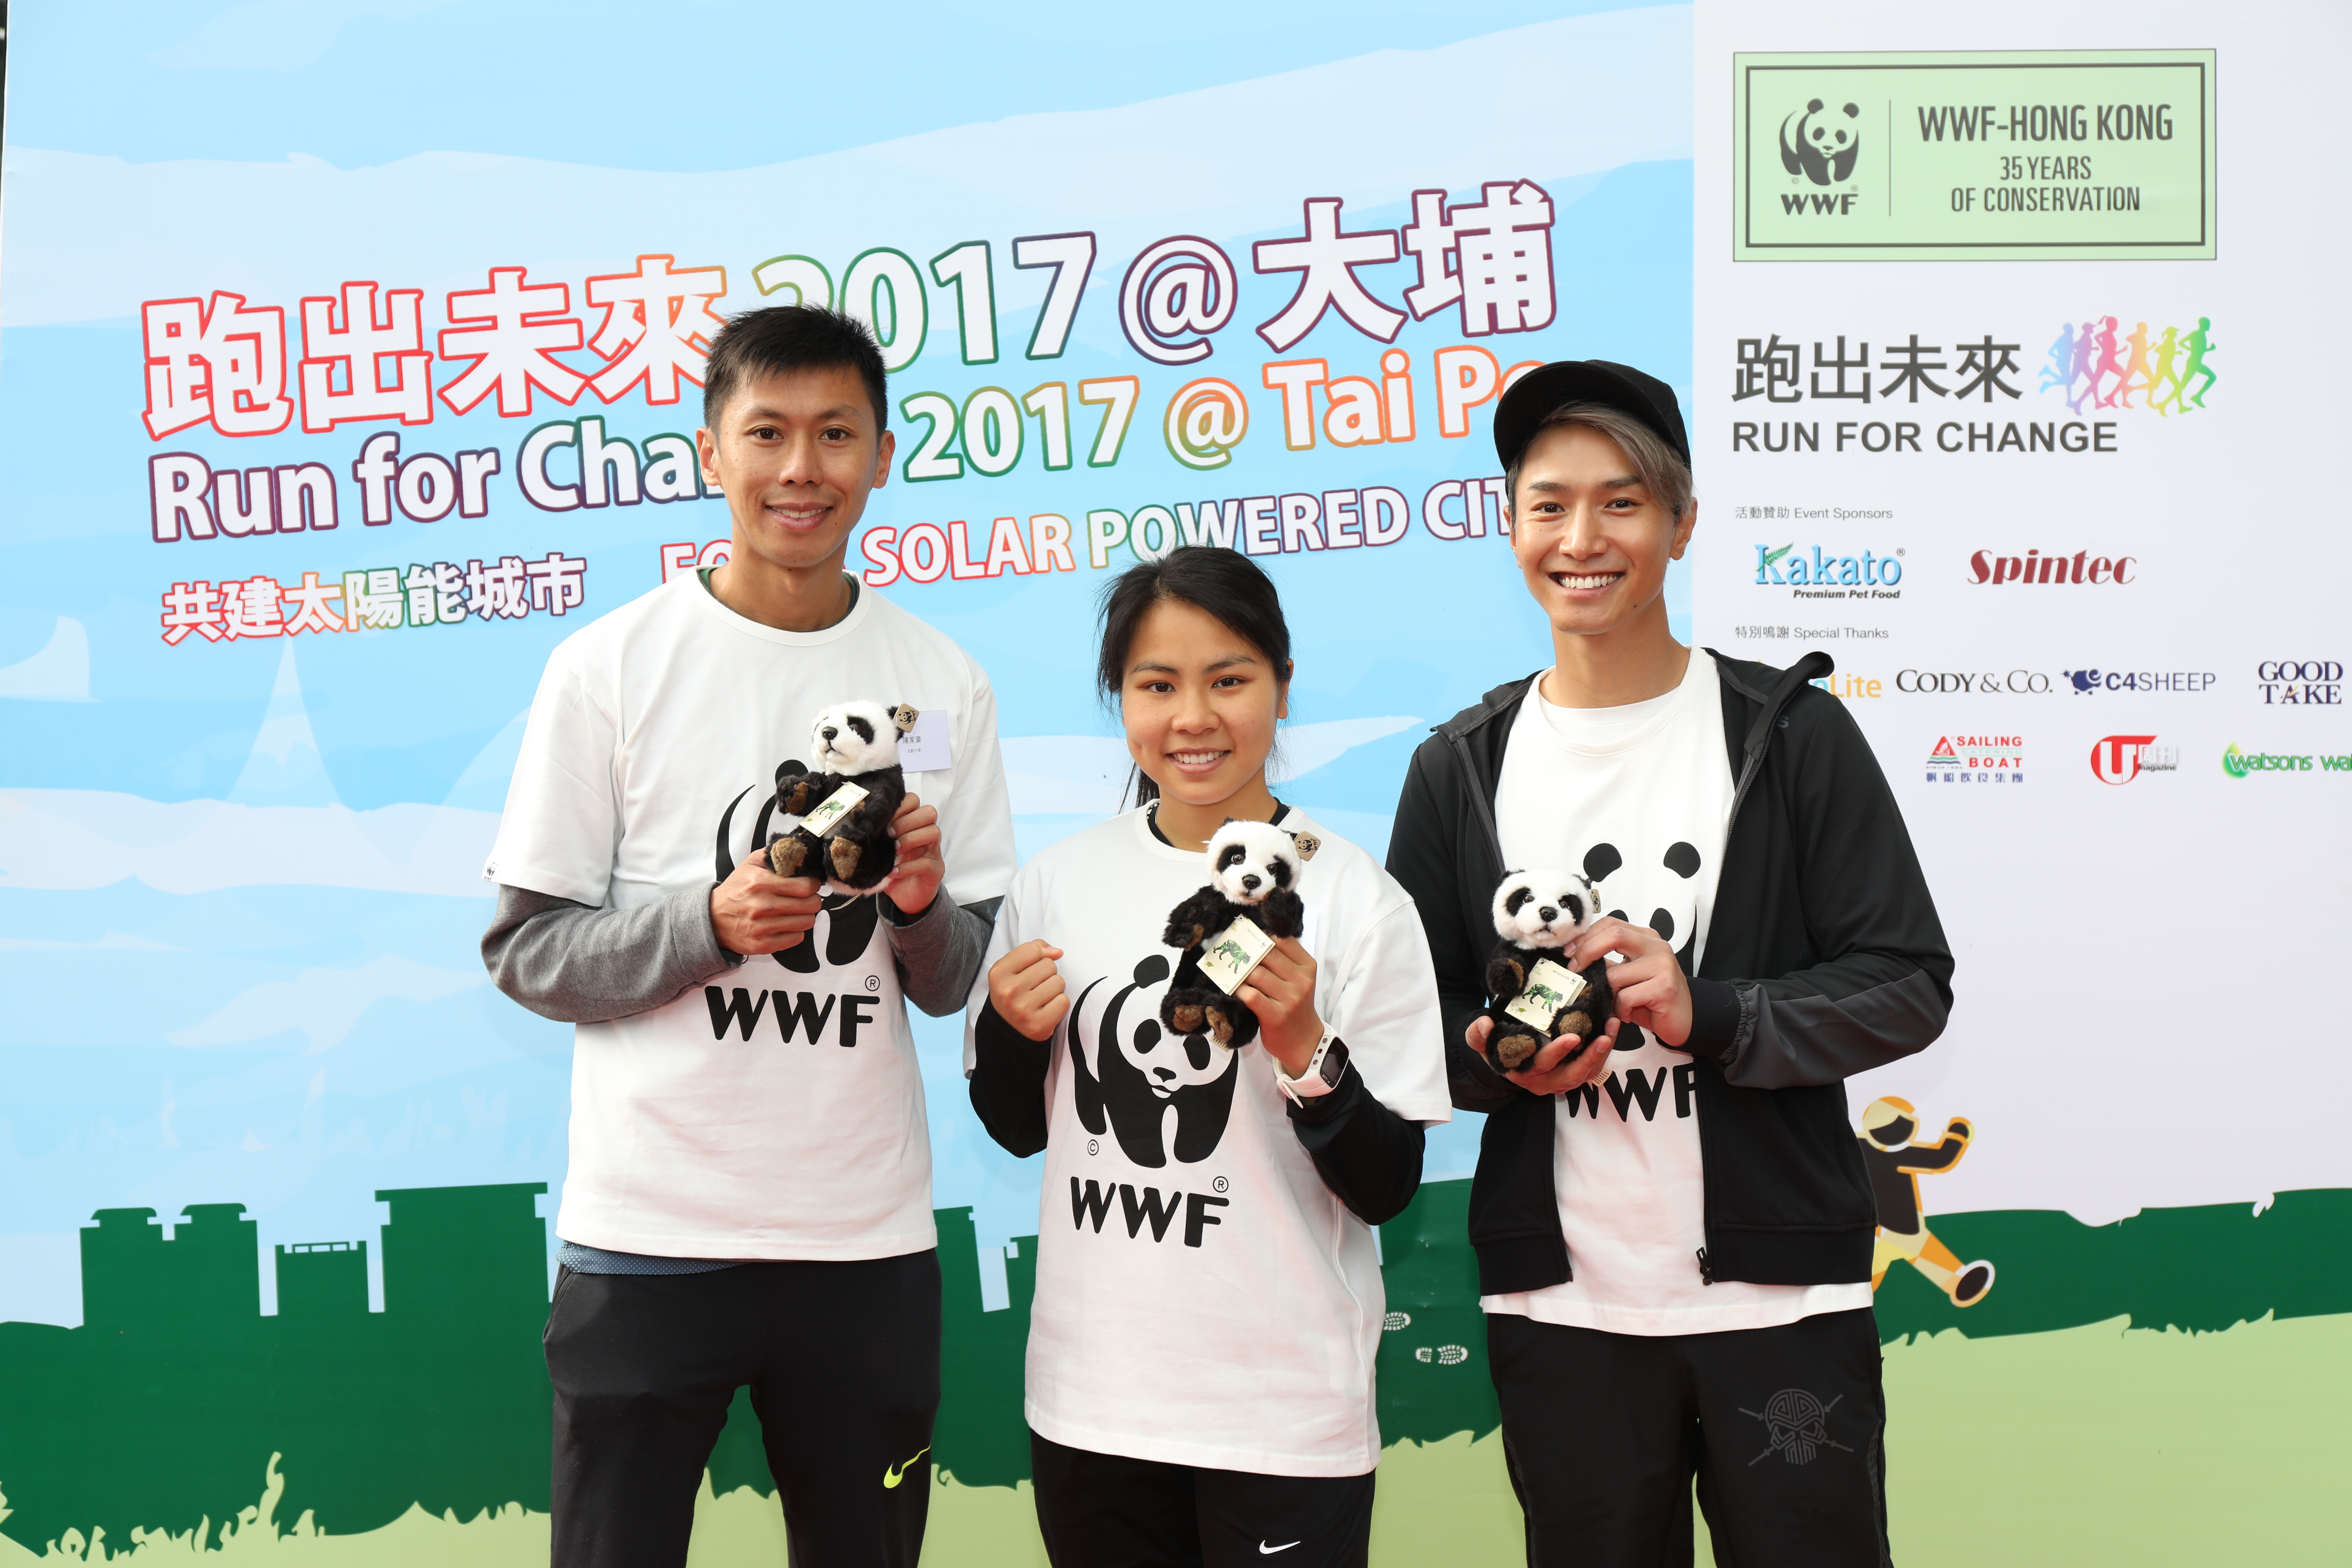 wwf as a business essay Business law essay help  free sample case study on wwf 100000+ students can't be wrong 797572 orders  49/5 ratings  4989.